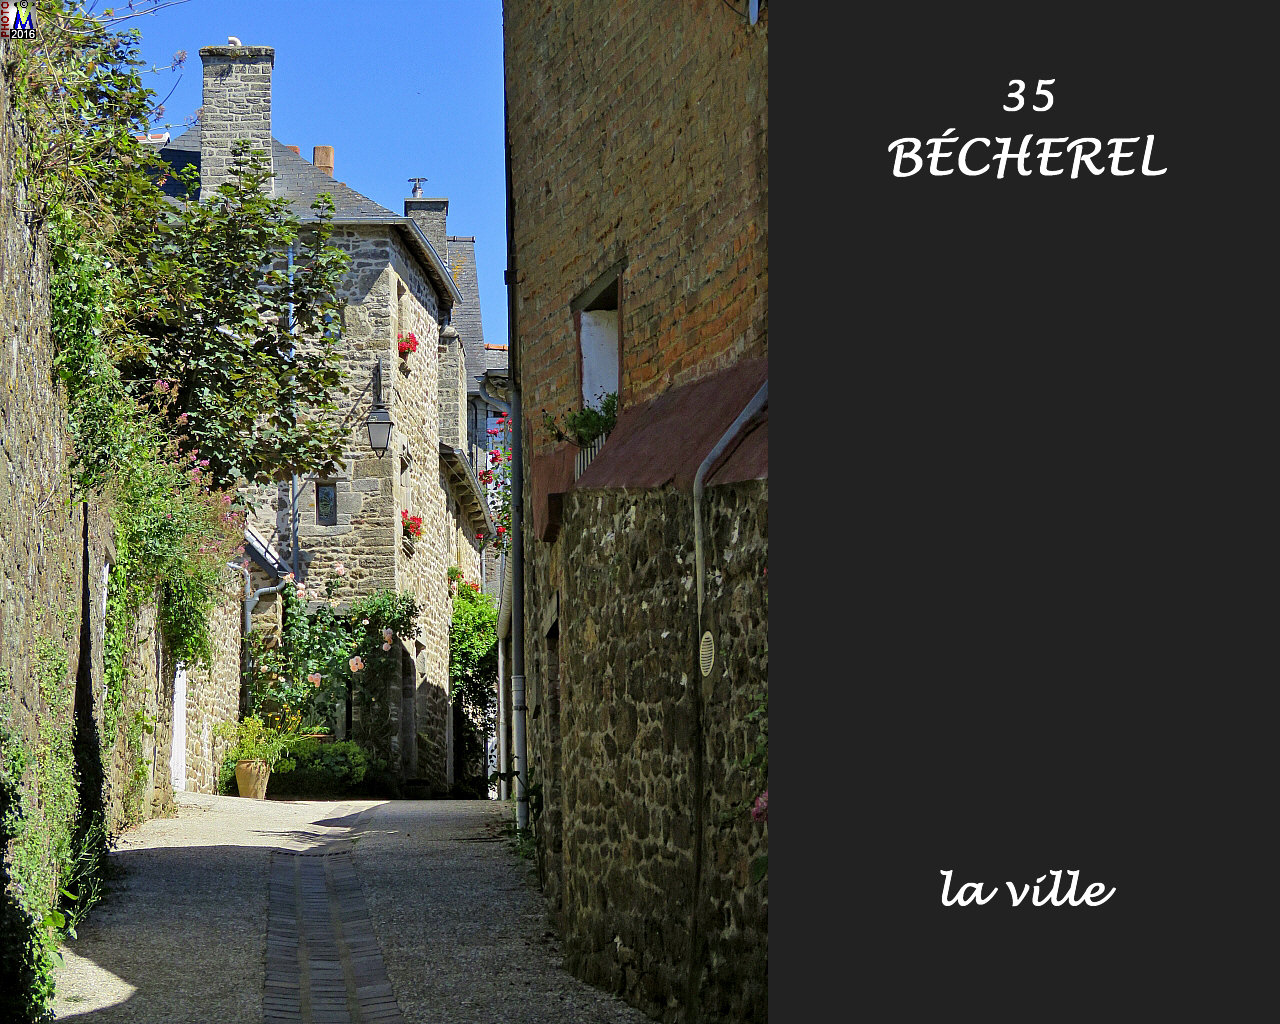 35BECHEREL_ville_124.jpg